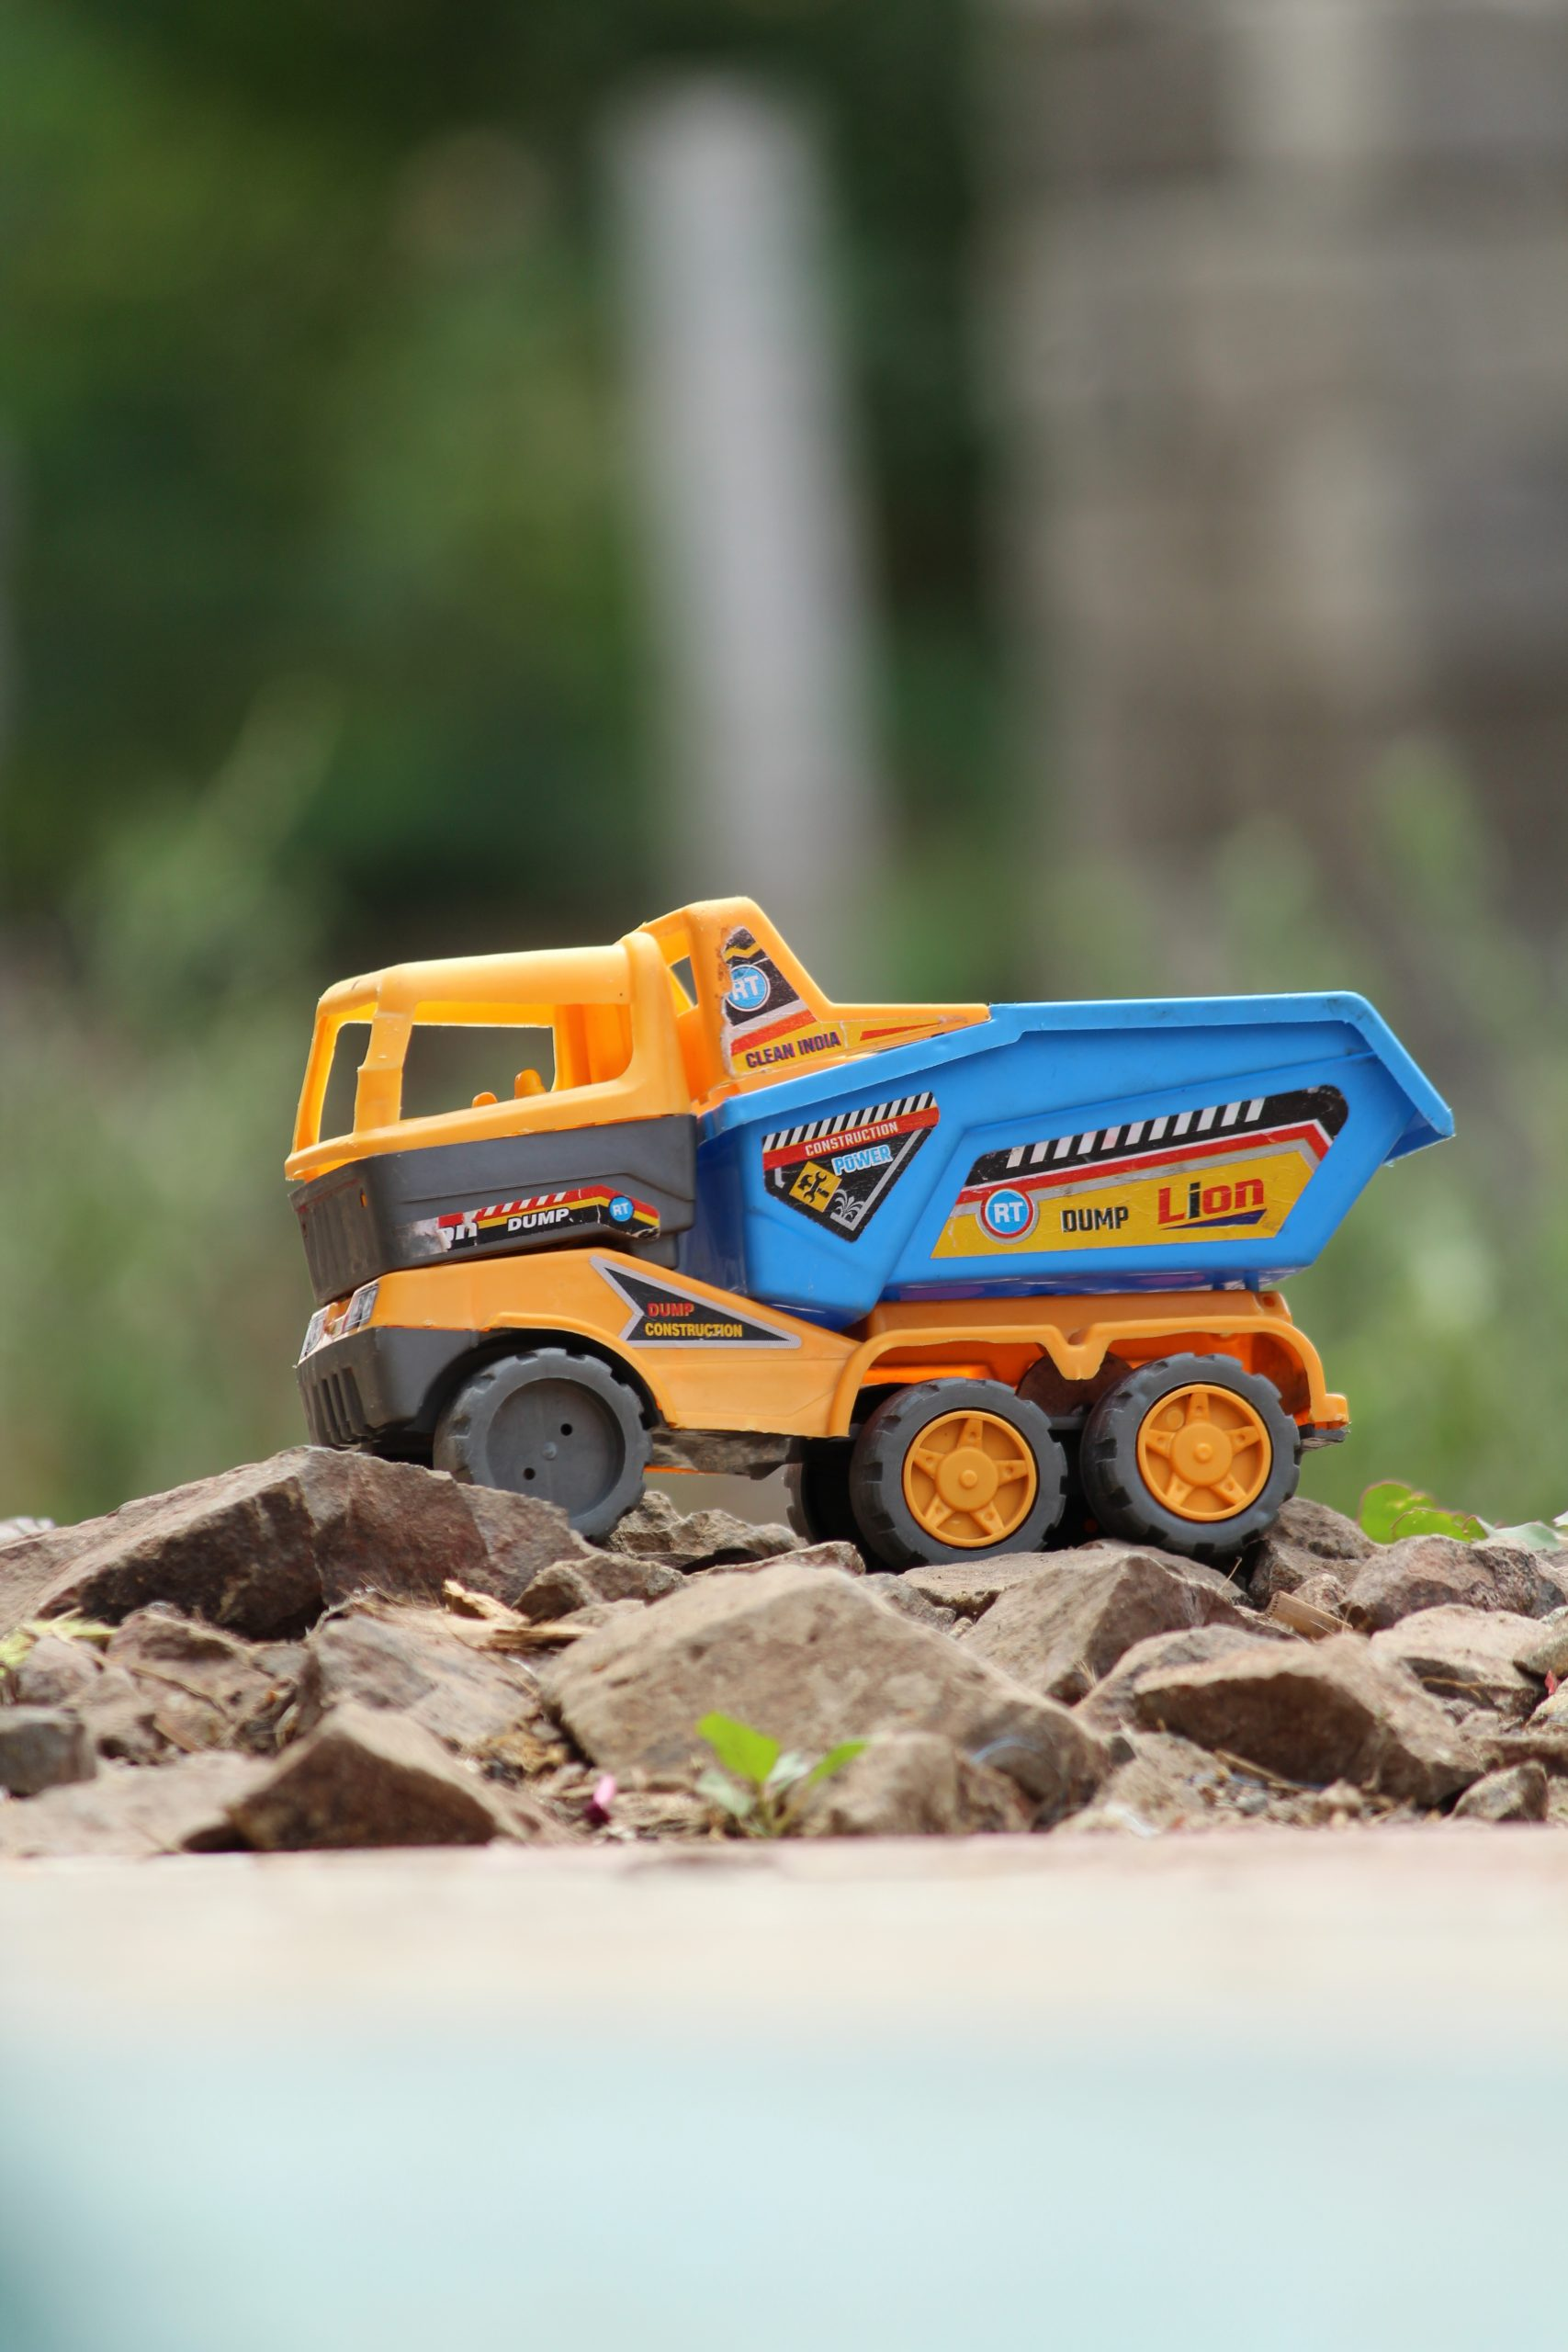 A toy truck